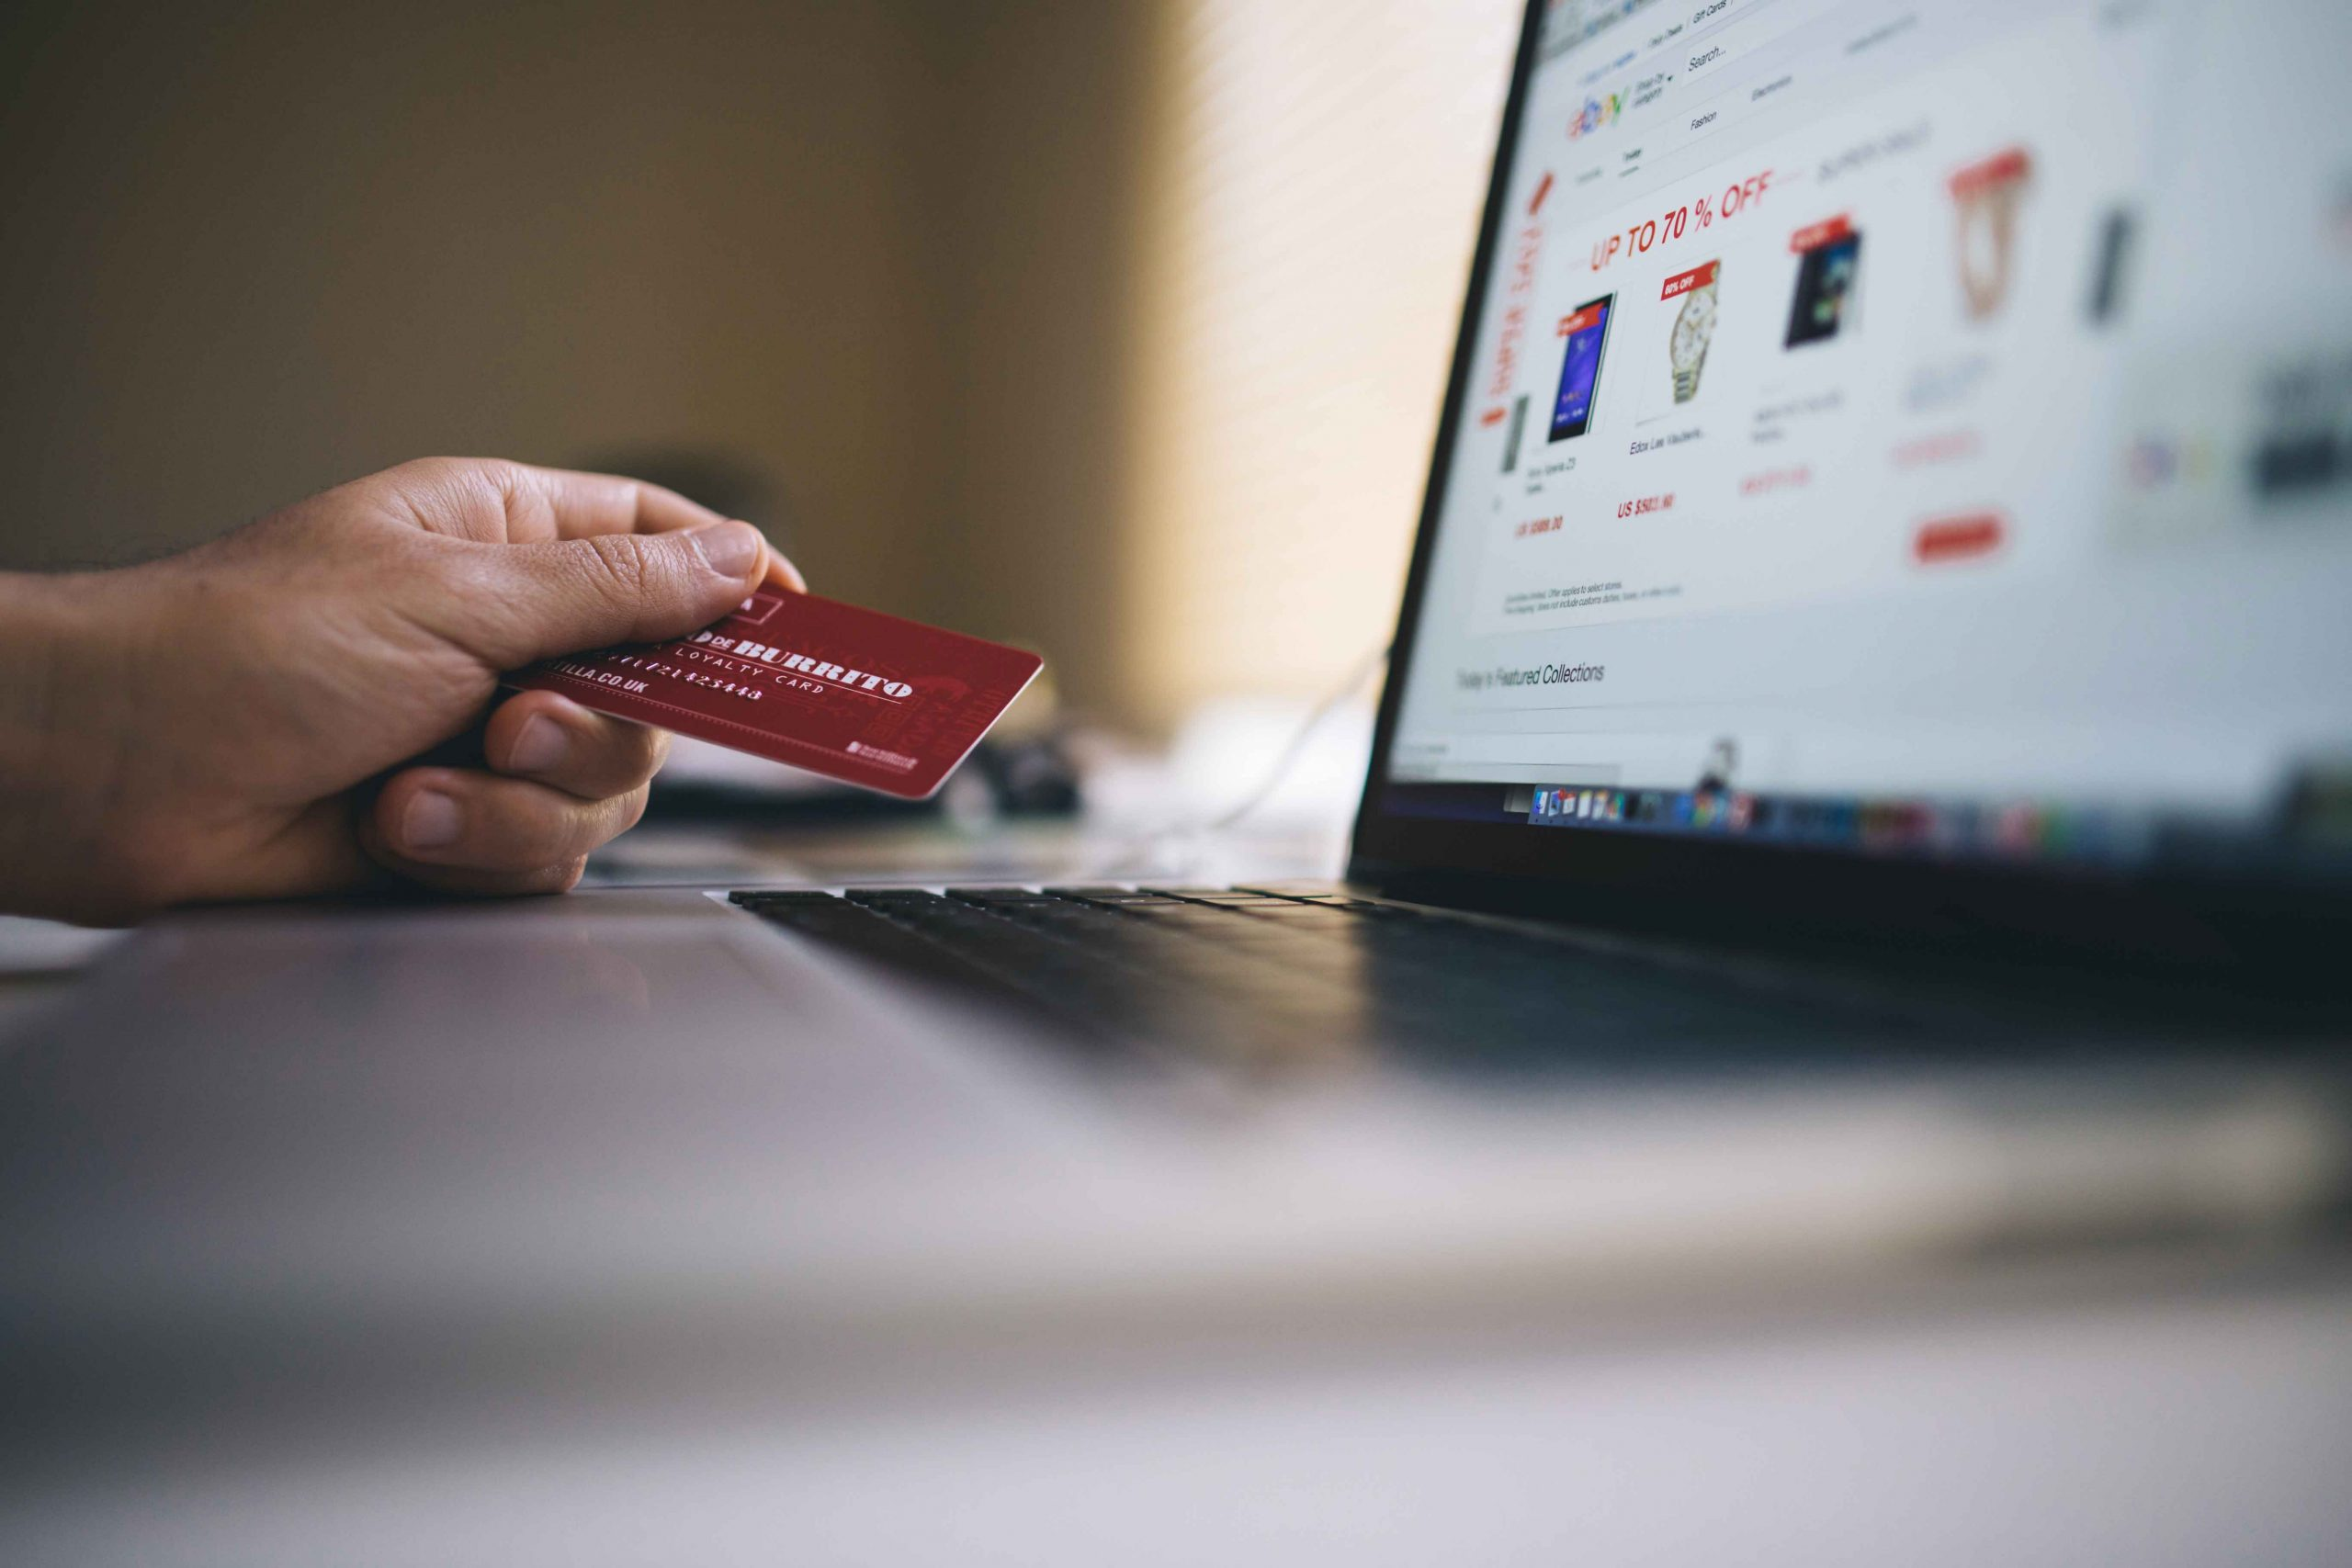 The importance of security in online stores